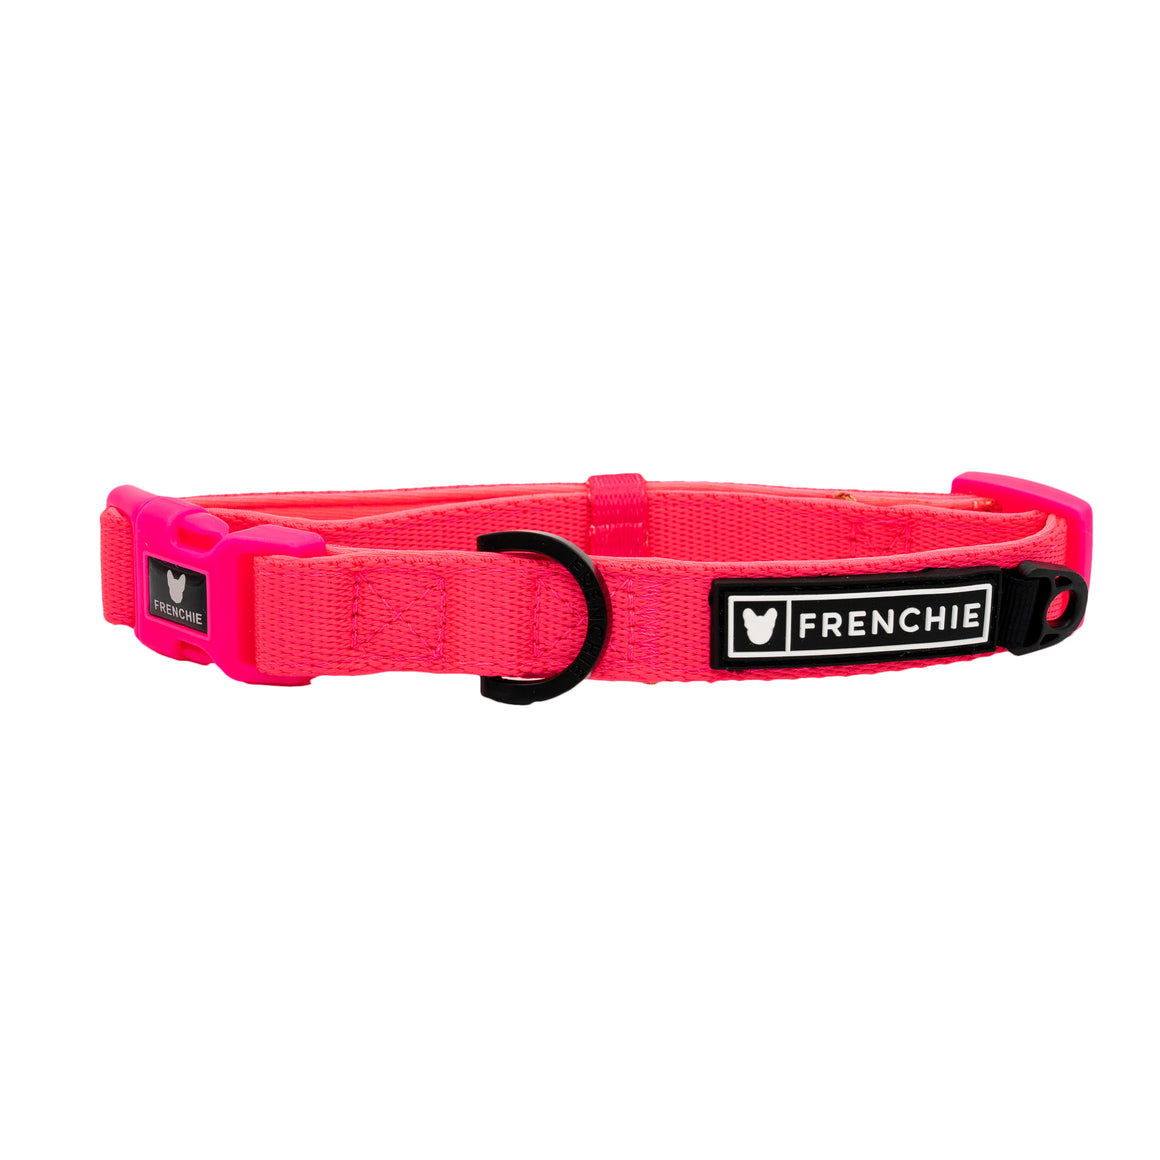 Frenchie Comfort Collar - Neon Pink